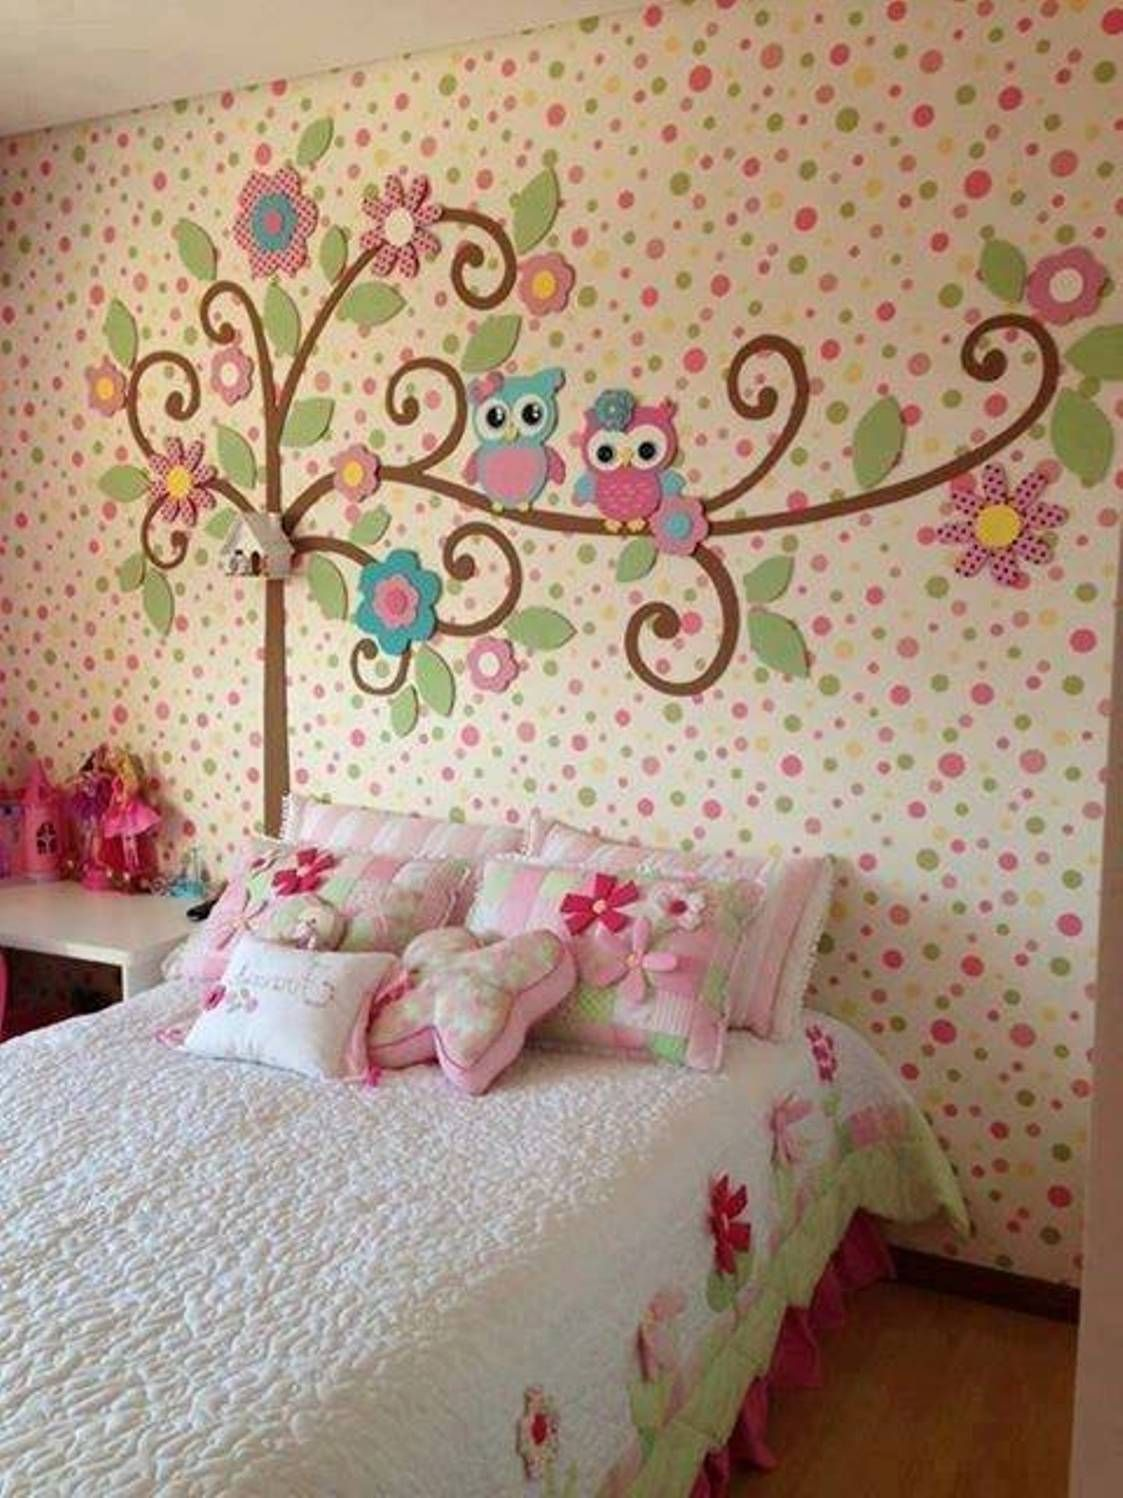 Cute girls bedroom design little girls bedroom design for Girls bedroom designs images